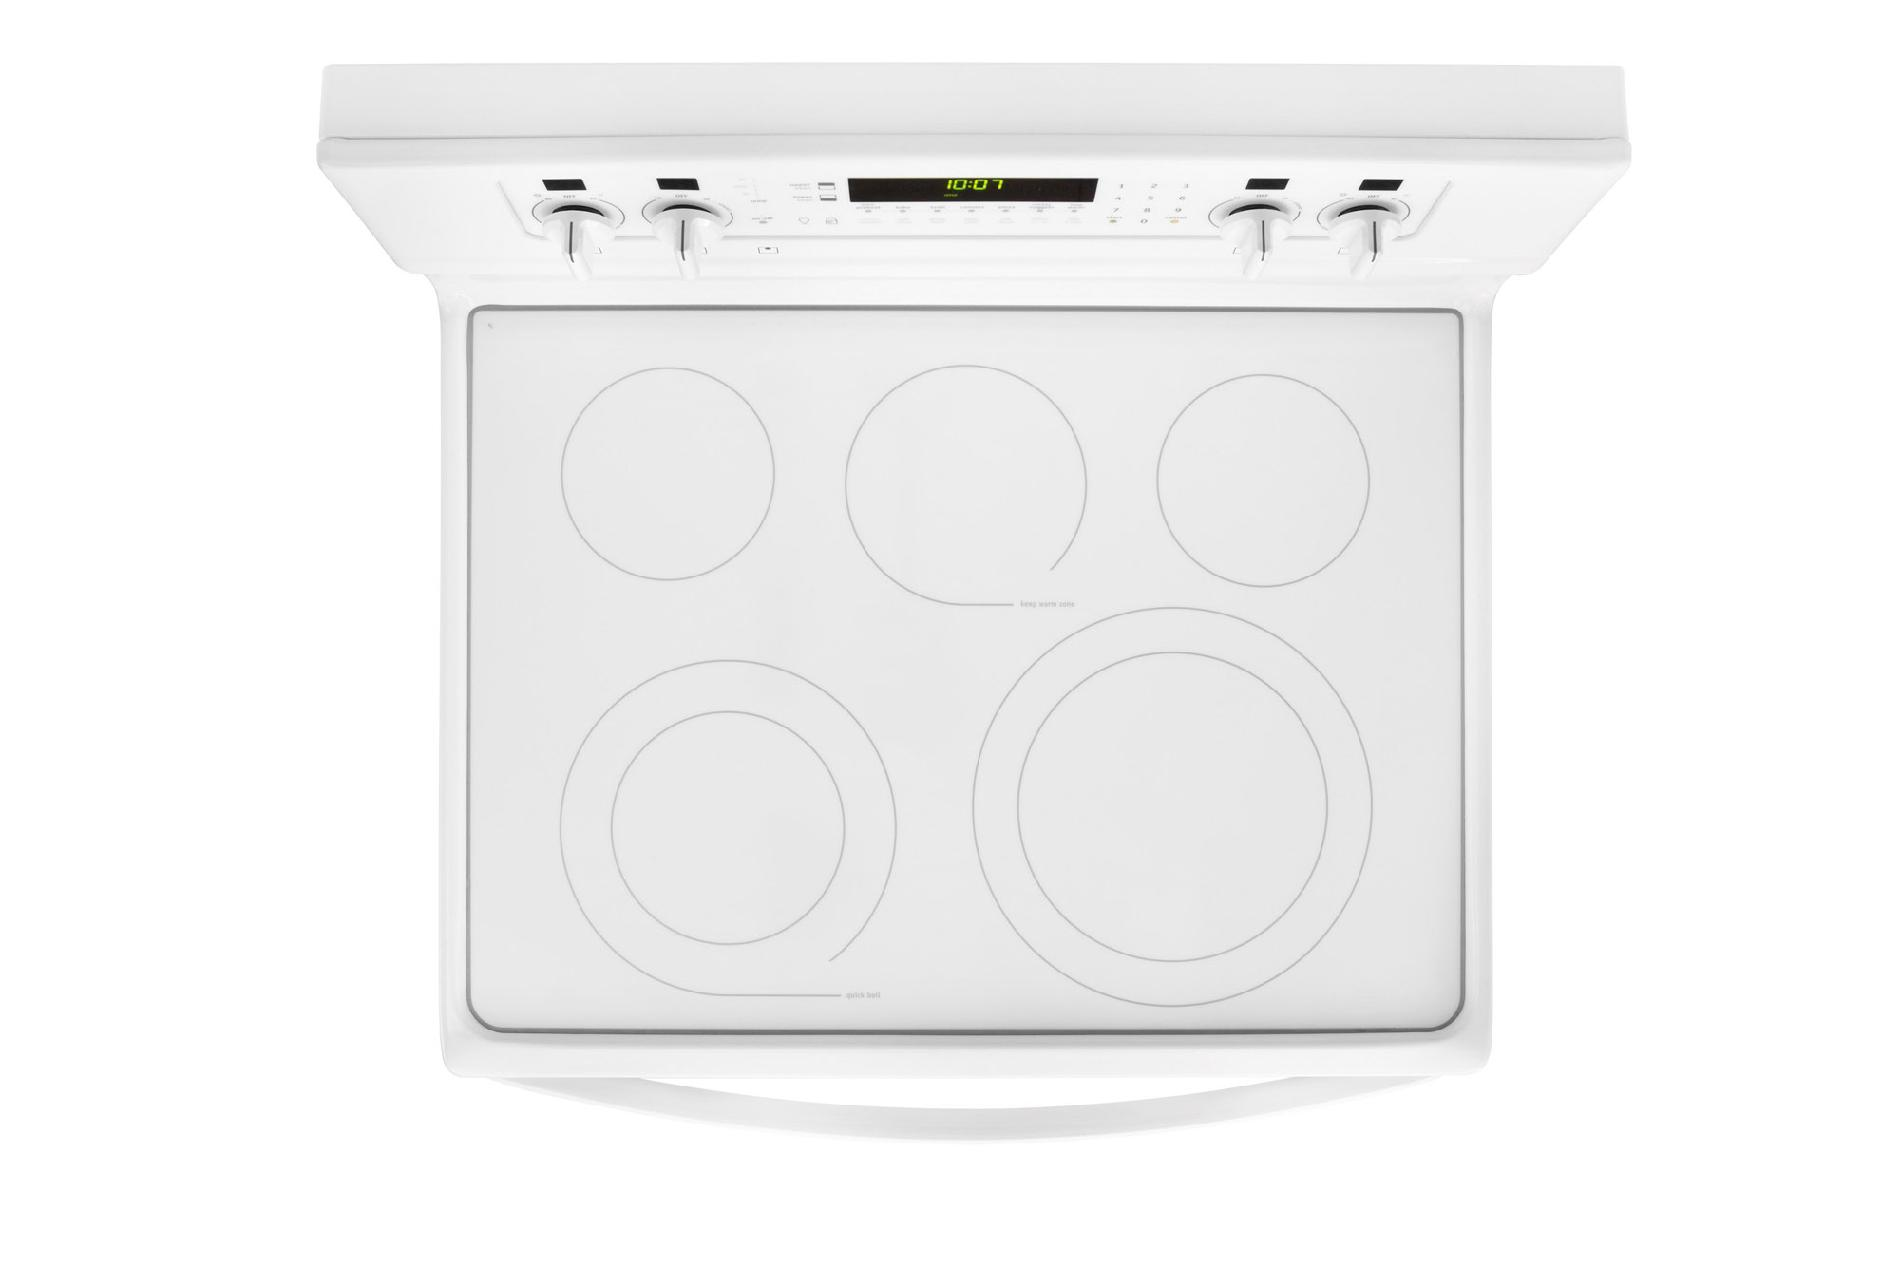 Frigidaire Gallery 7 cu. ft. Double-Oven Electric Range - White